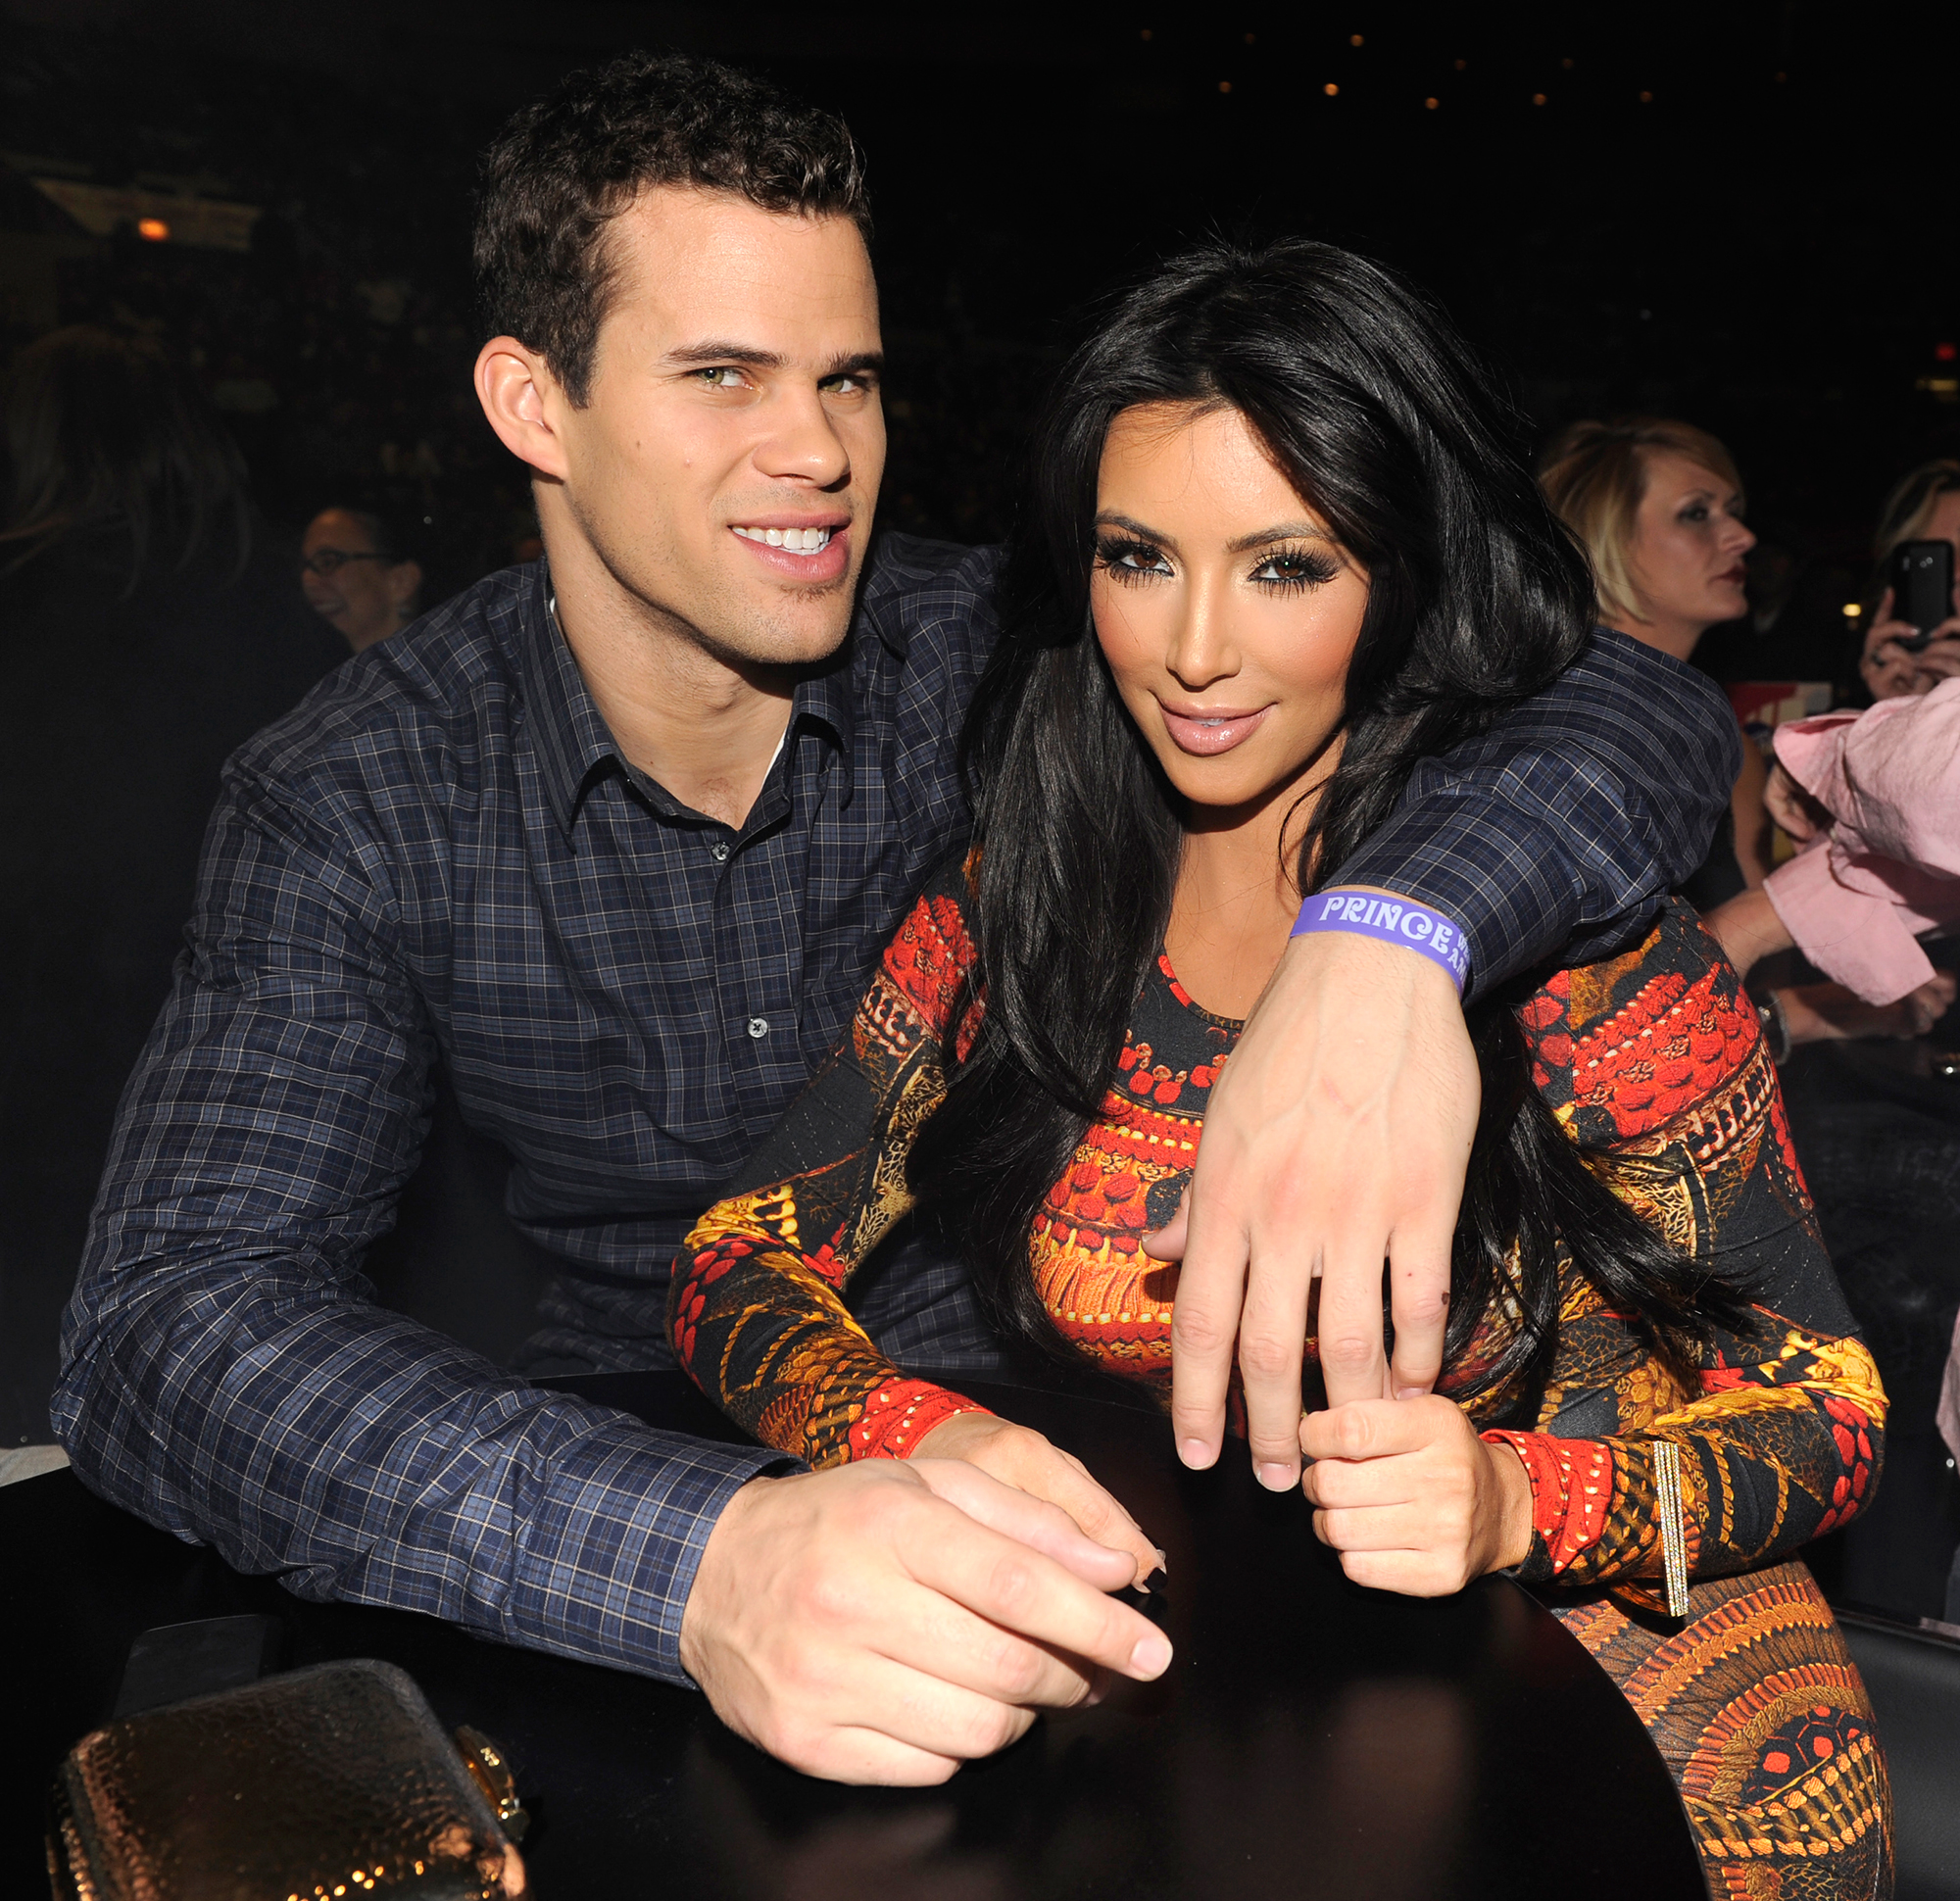 """Hollywoods shortest marriages - Their fairytale August 2011 wedding was televised in a two-part special on E!, and Kardashian filed for divorce in October of that year. """" I hope everyone understands this was not an easy decision. I had hoped this marriage was forever,"""" she said in a statement."""